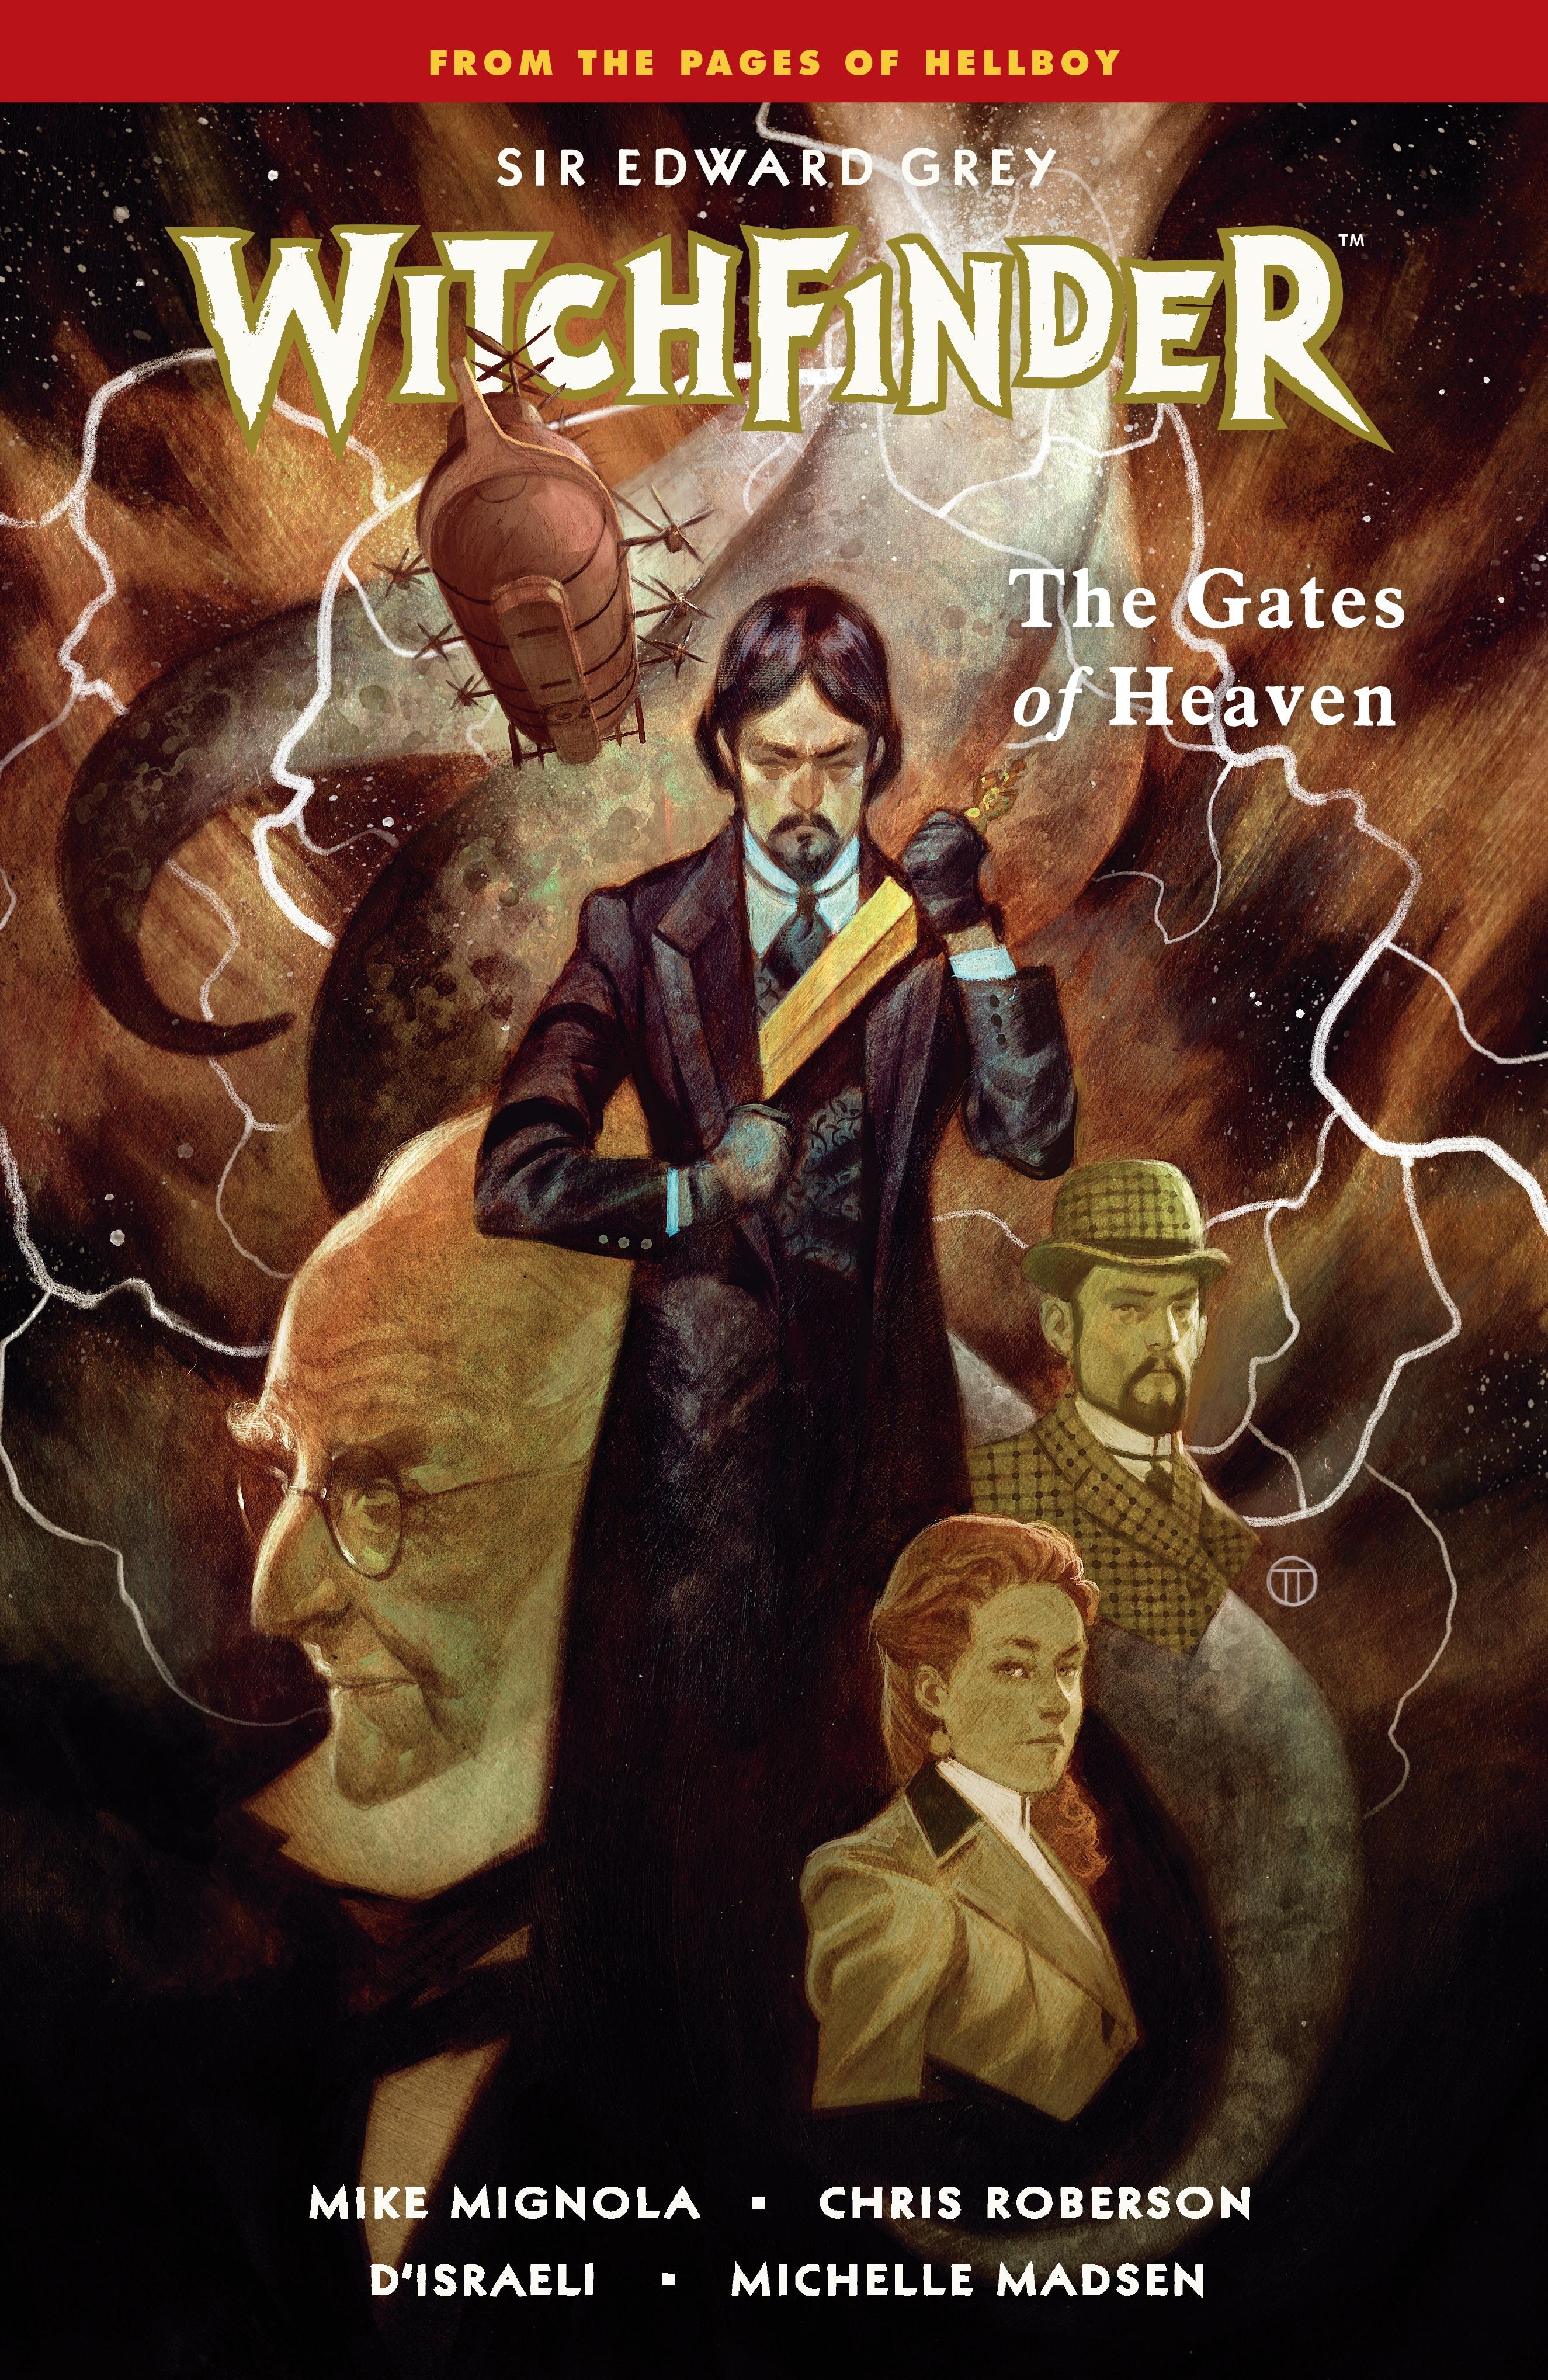 Witchfinder - the Gates of Heaven 5